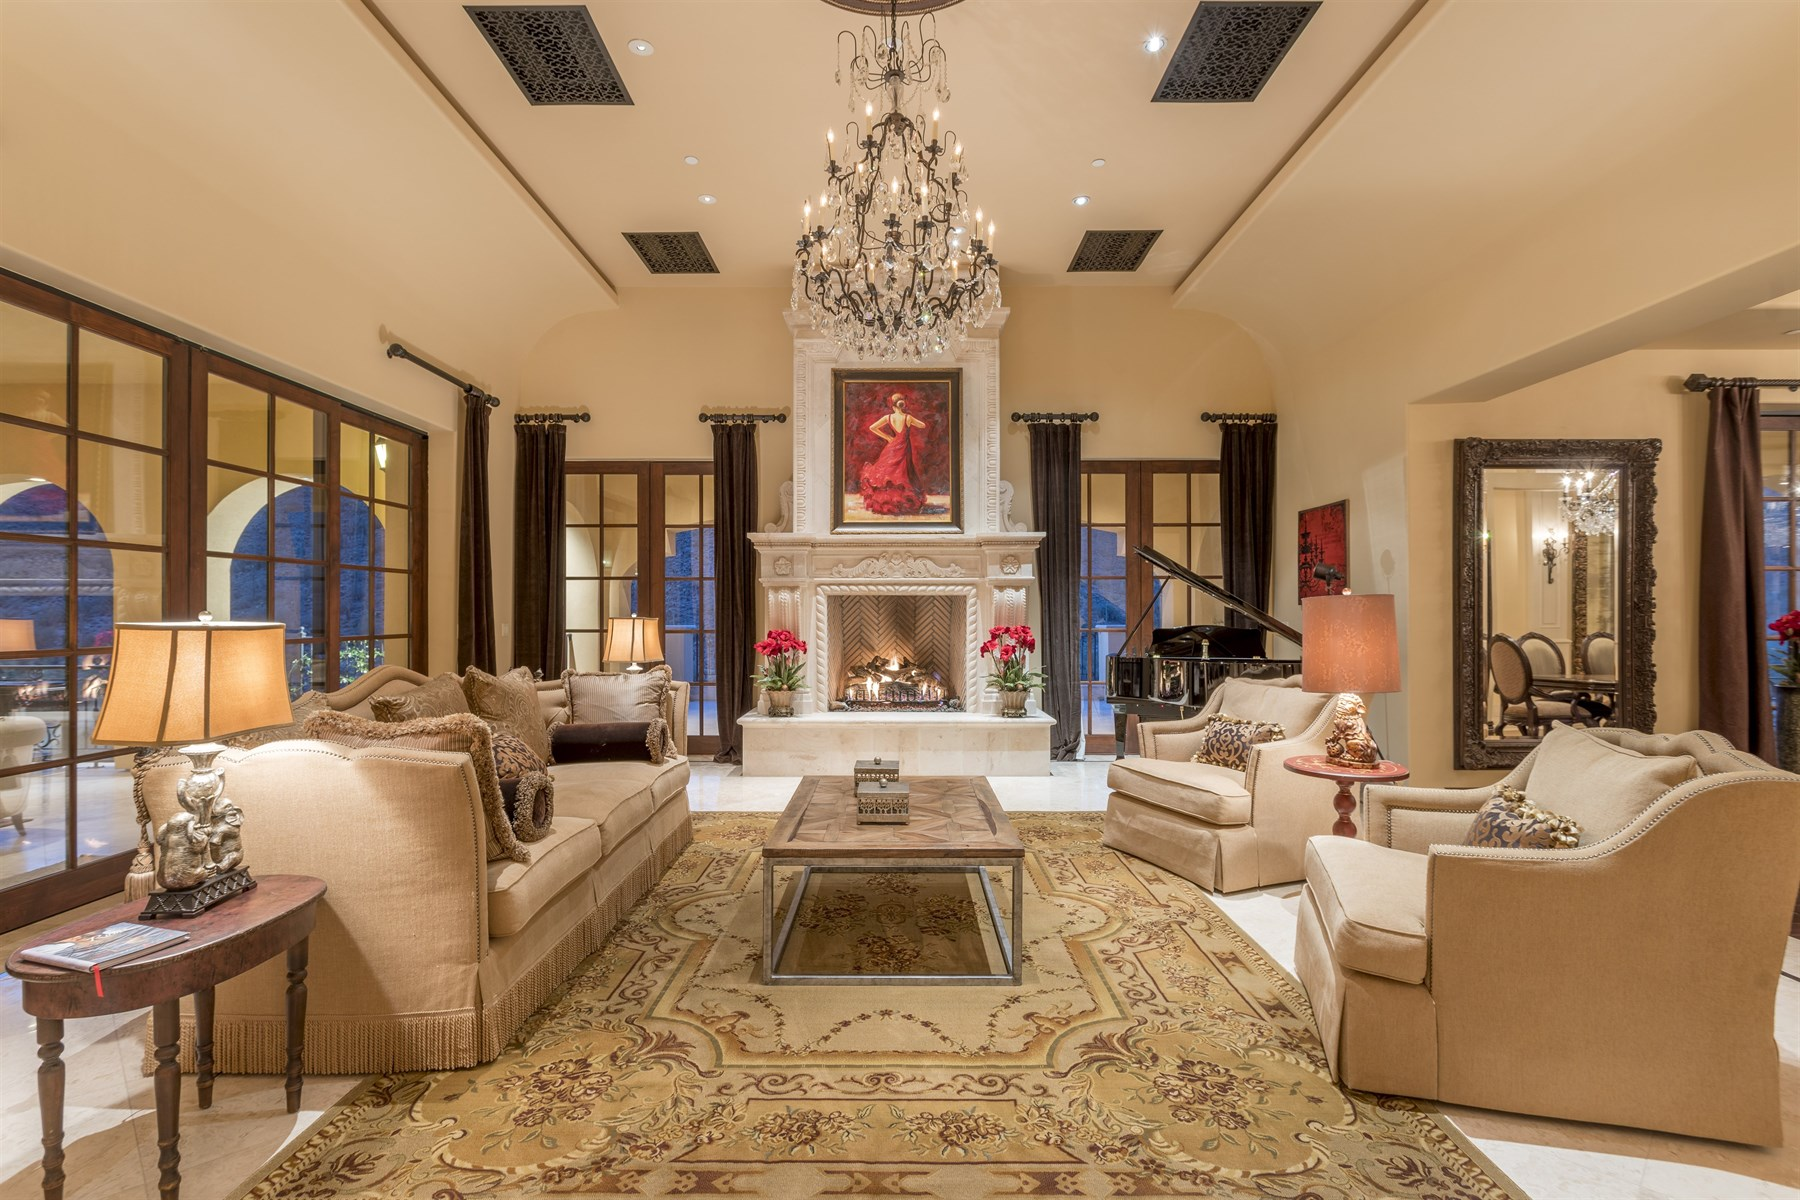 Single Family Homes for Active at Elegant Renovated Estate in Silverleaf 10966 E Grandview Way Scottsdale, Arizona 85255 United States